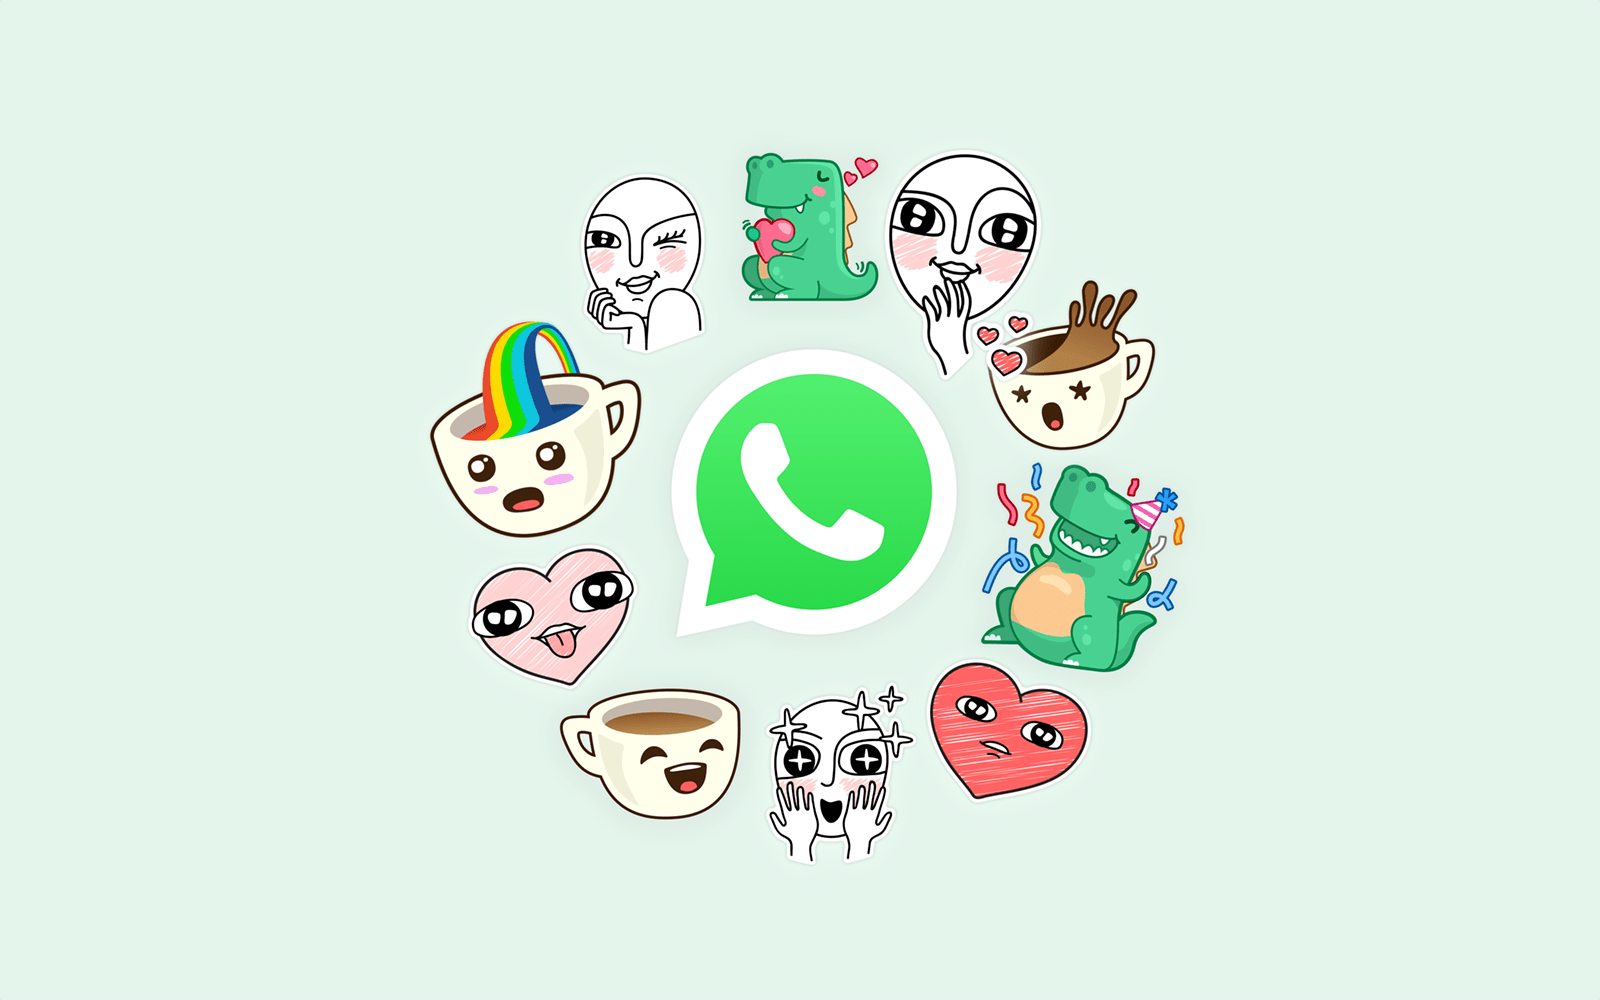 A comprehensive guide on how to get and make your own whatsapp stickers